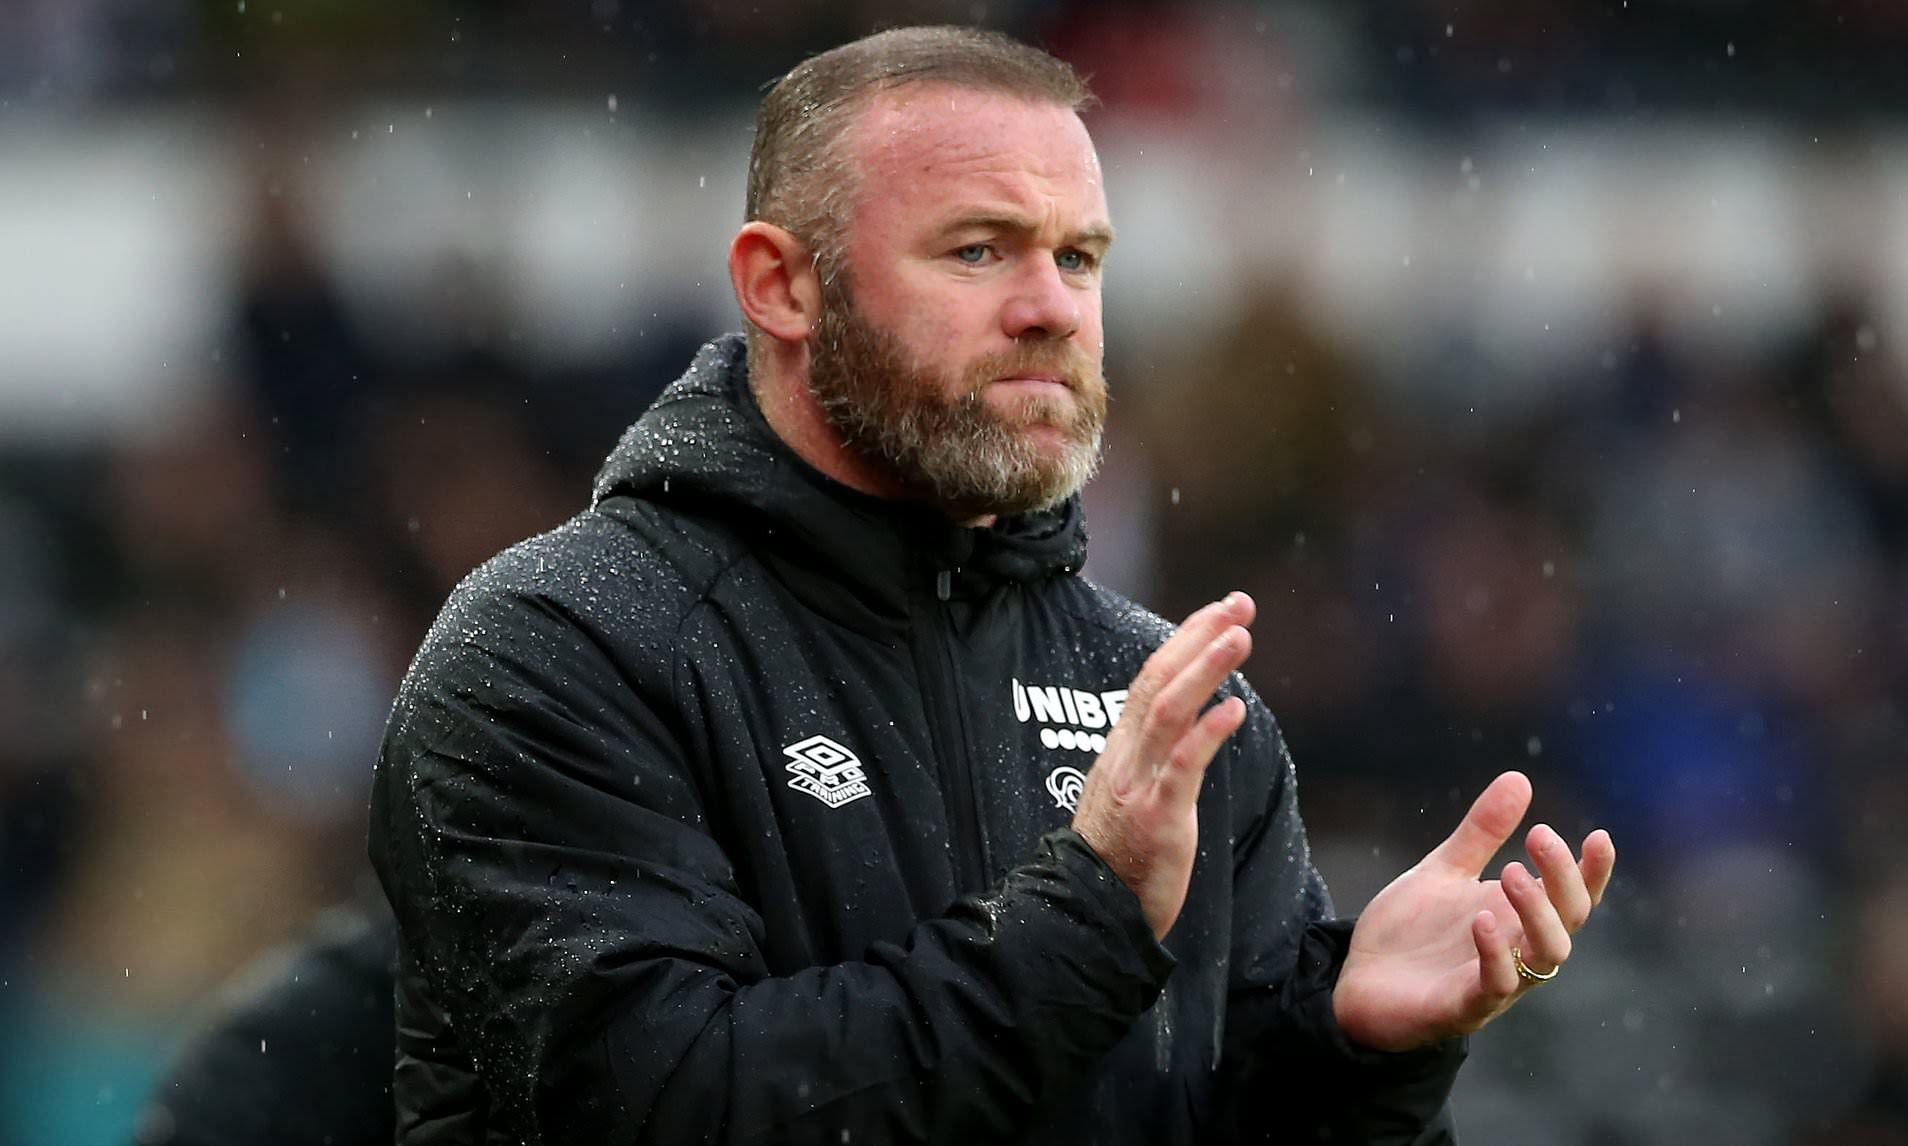 Wayne Rooney pleads for Derby's administrators to 'get the right person to take over'